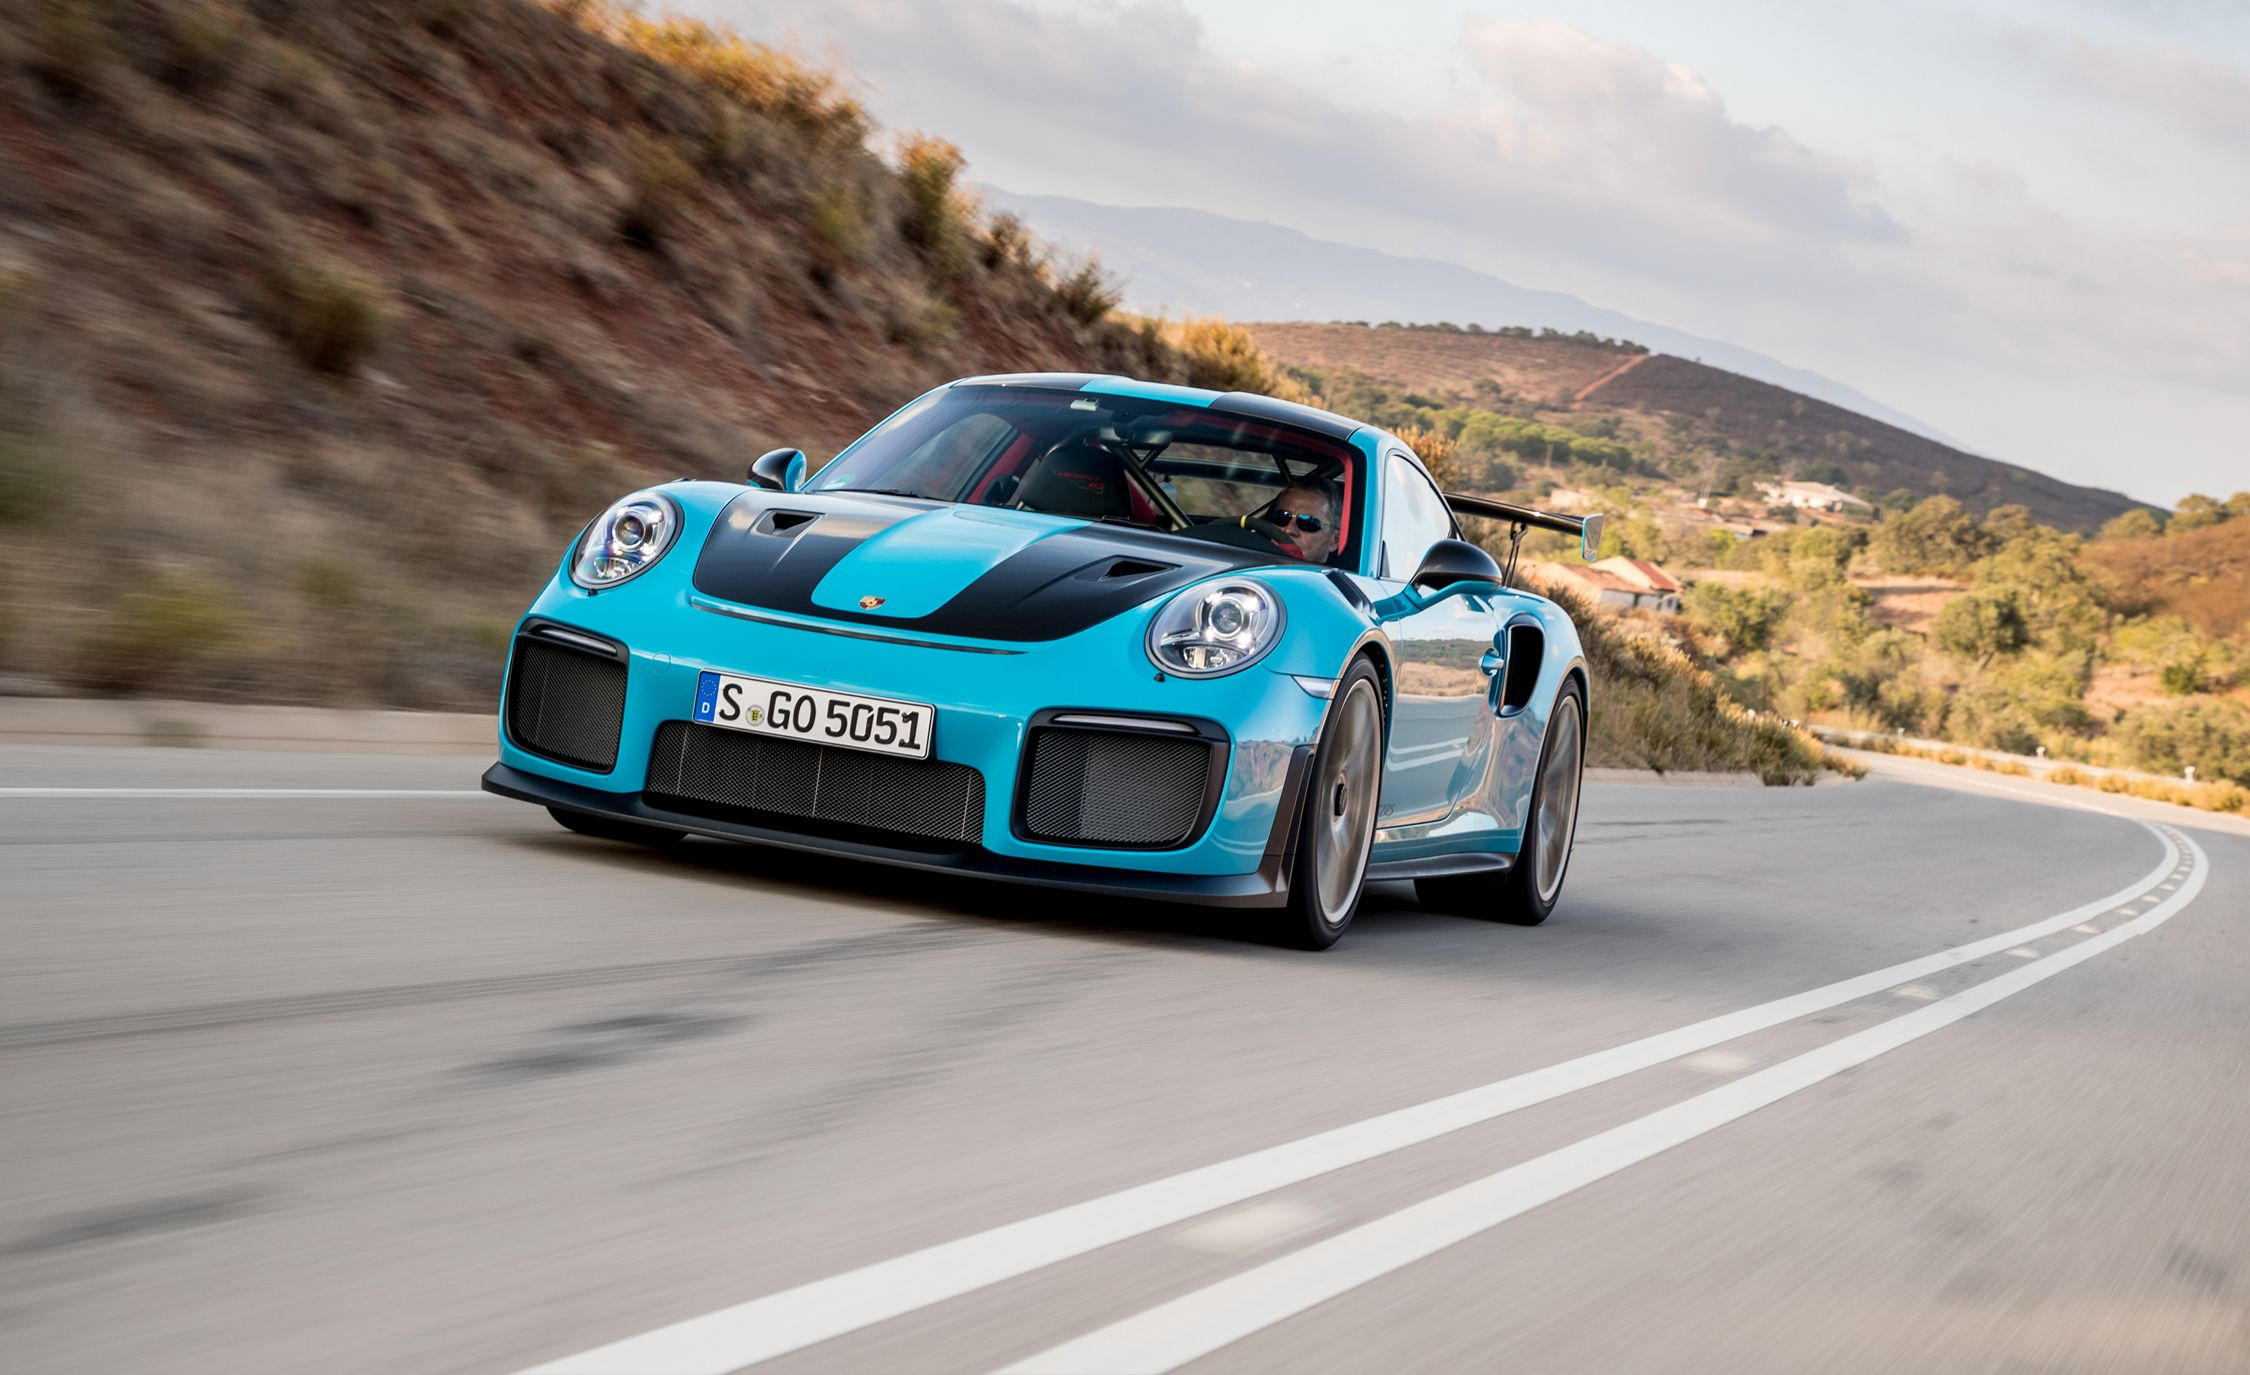 Jeep Build And Price >> First Drive: 2018 Porsche 911 GT2 RS | Review | Car and Driver